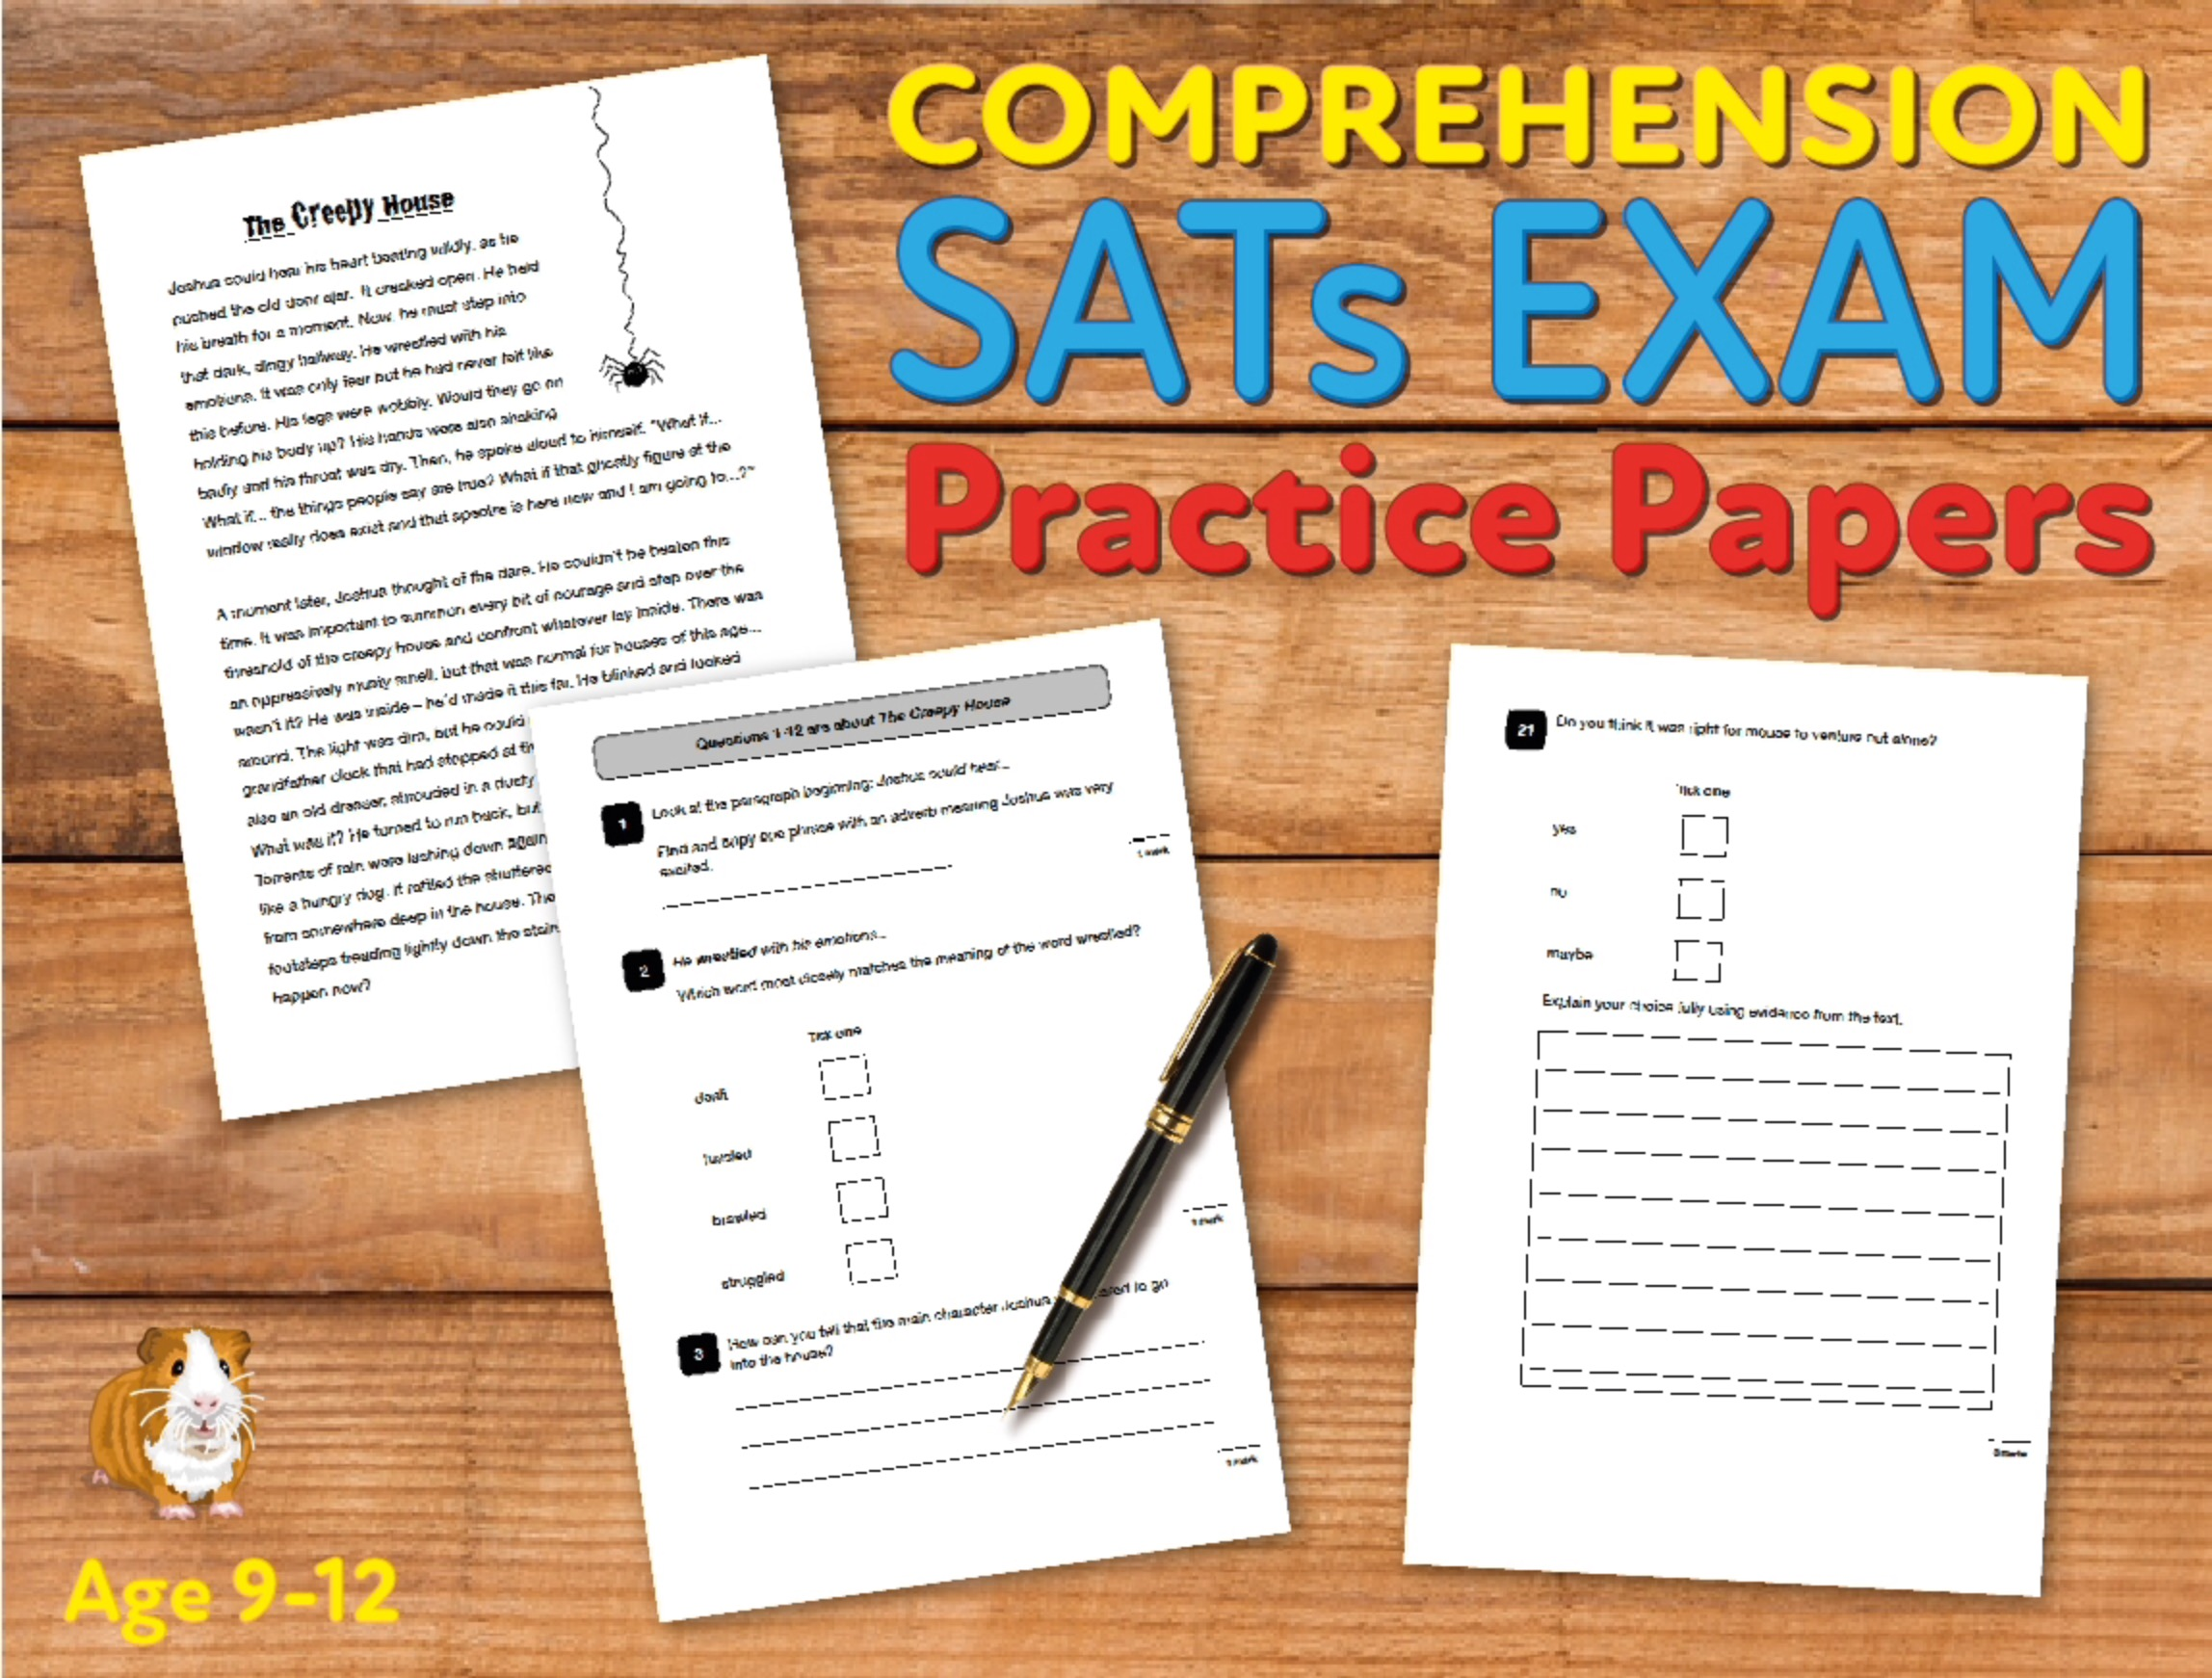 SATS Comprehension Tests (At The Stroke Of Midnight) 9-12 years Digital Download